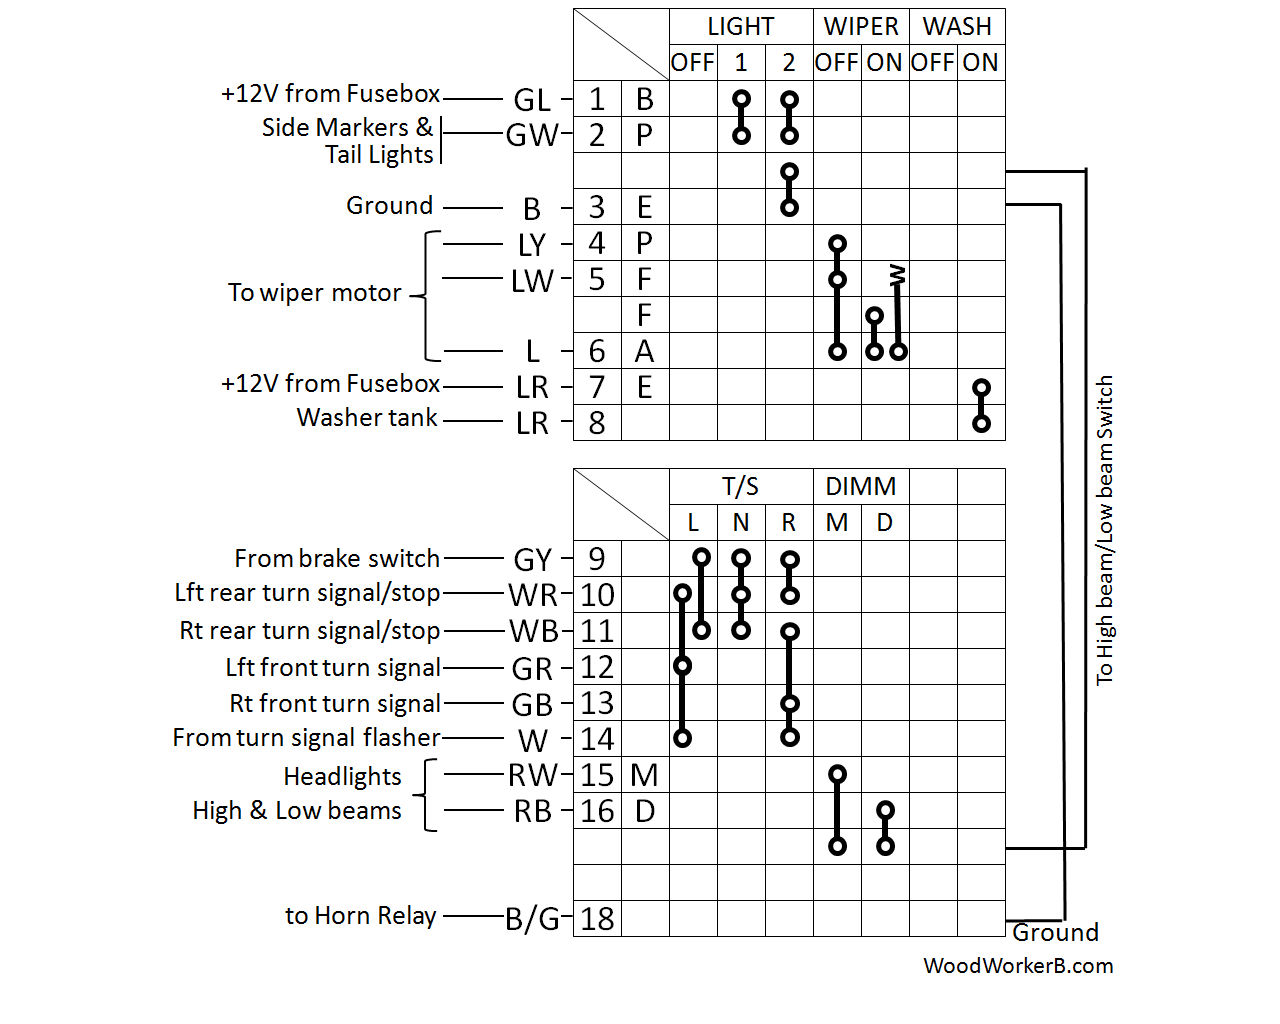 hight resolution of wiper switch wiring diagram 3